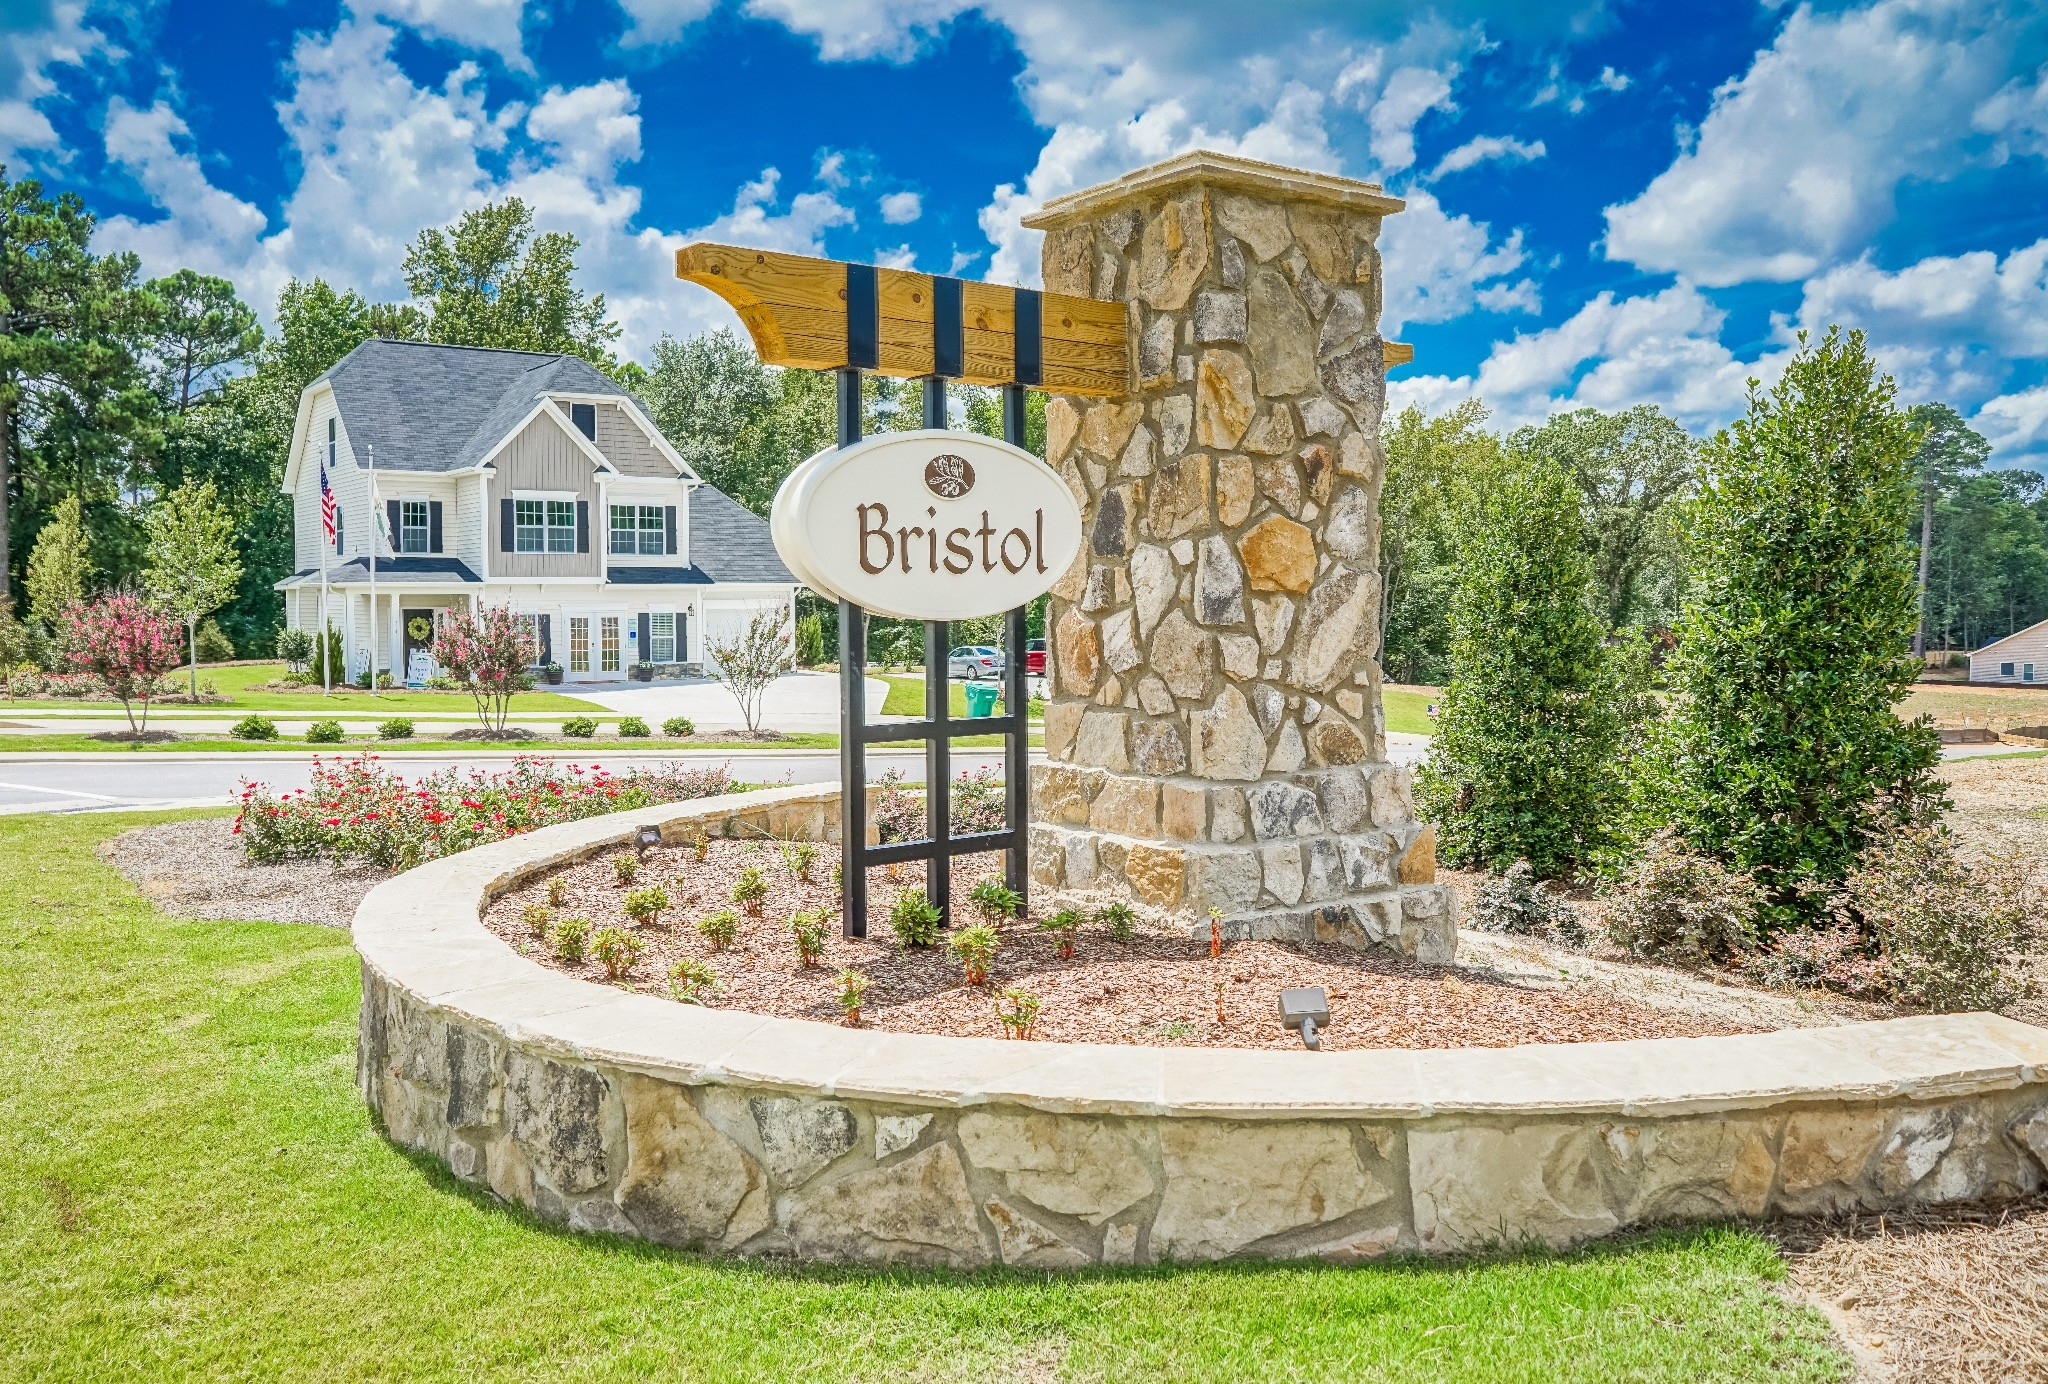 Bristol community entrance sign and model home in